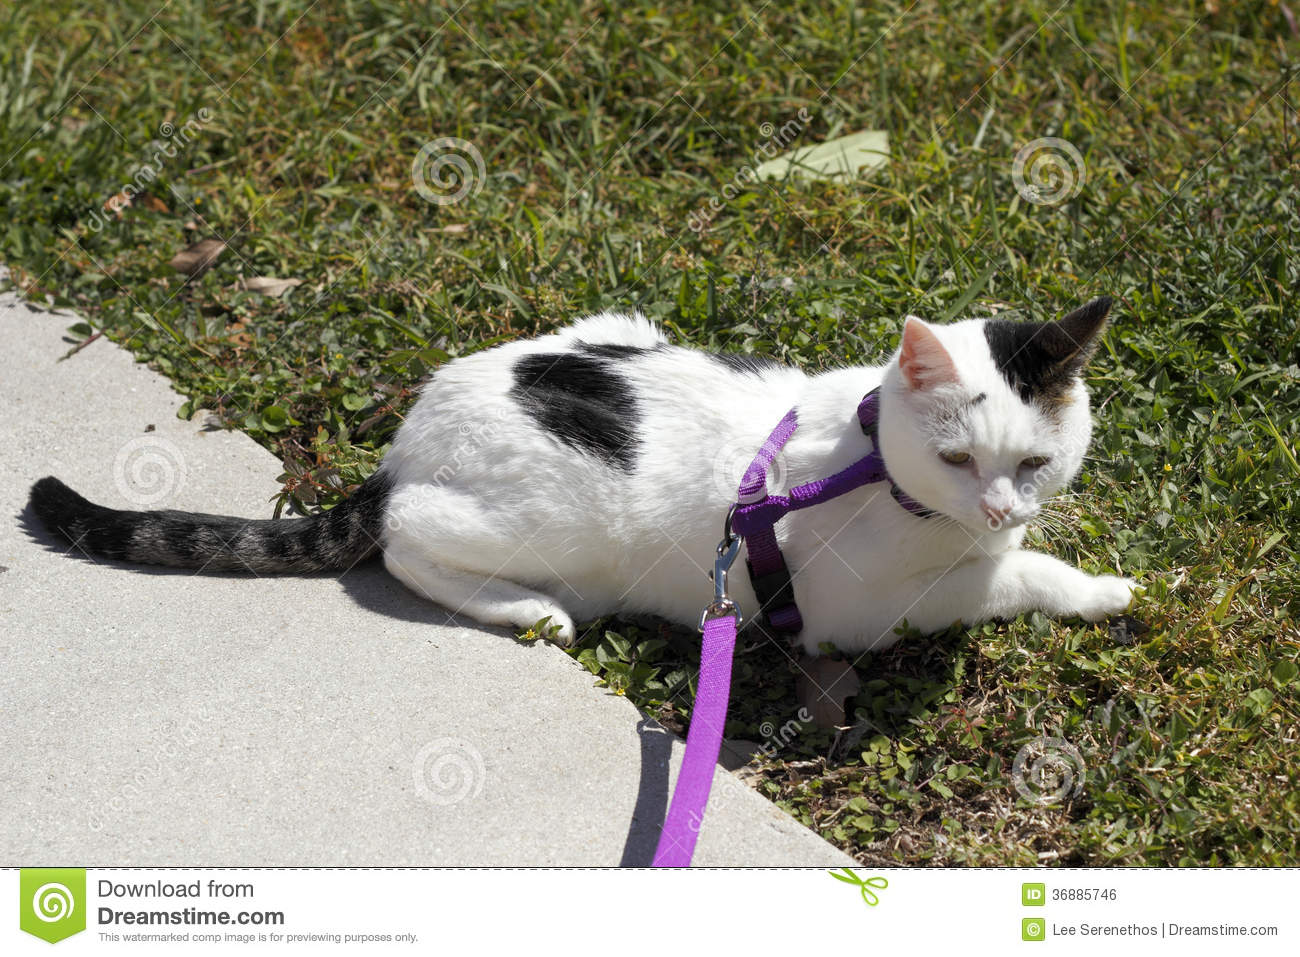 Cat ing a Harness stock photo. Image of animal, hair - 36885746